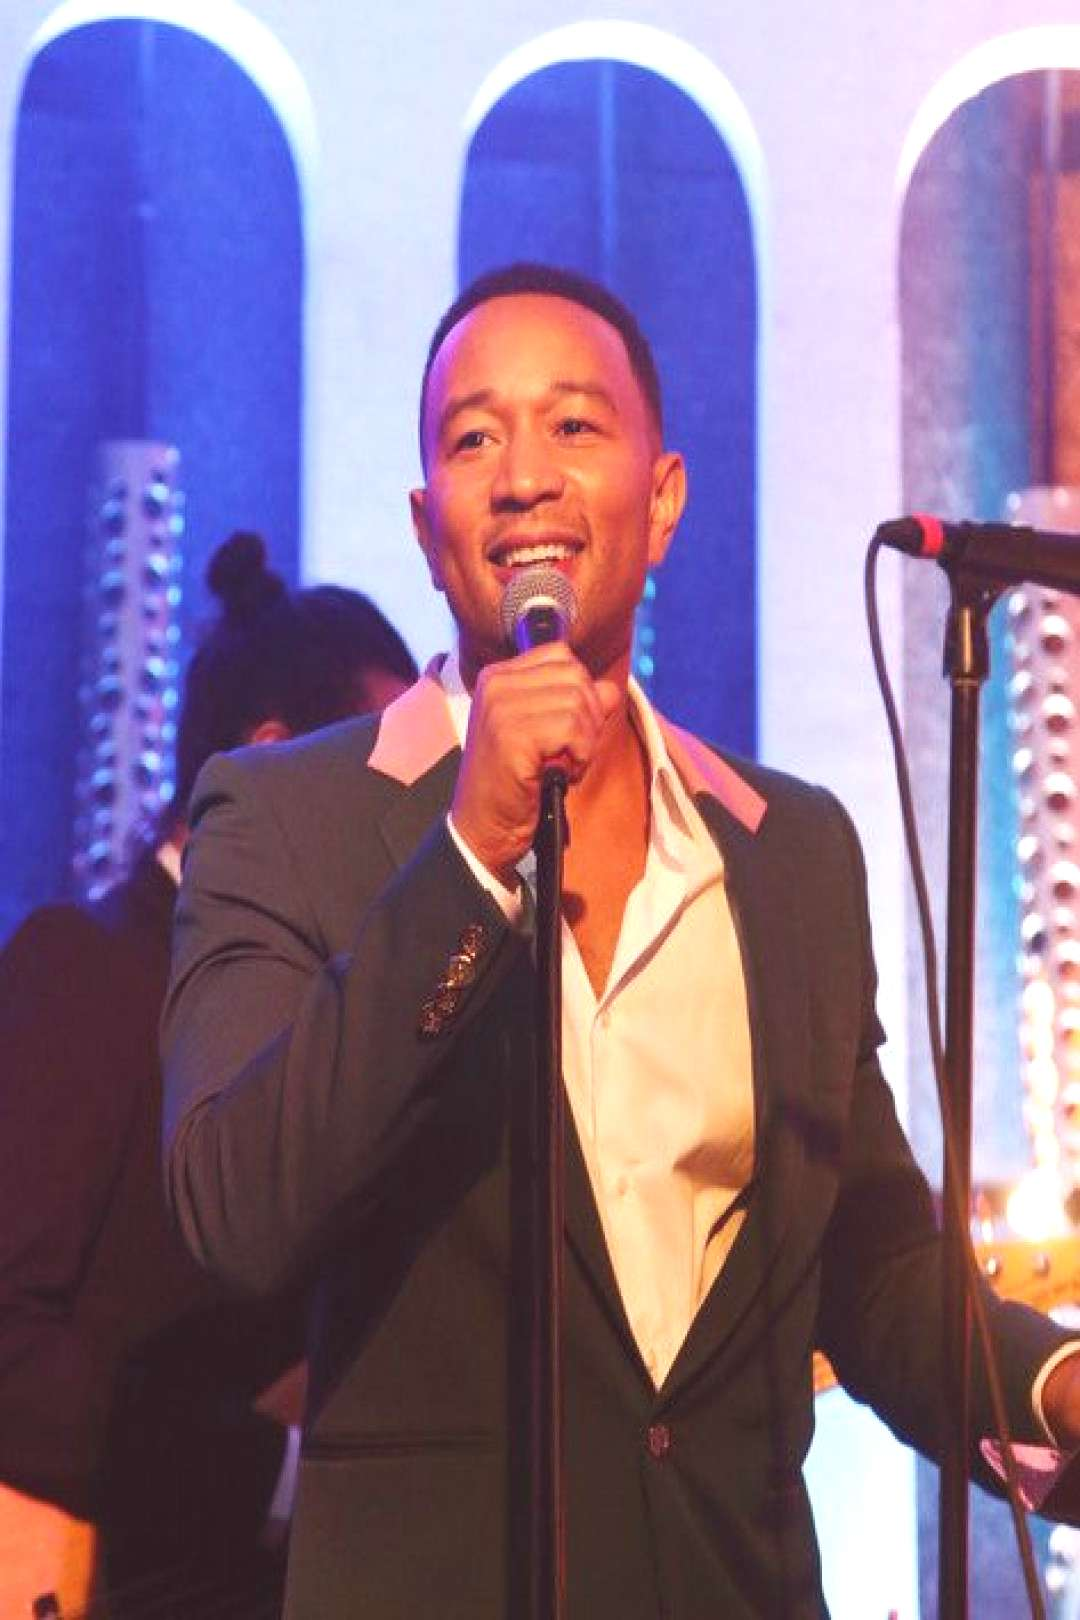 John Legend performs onstage during Shermans Showcase Premiere Party on July 30, 2019 in Los Ang